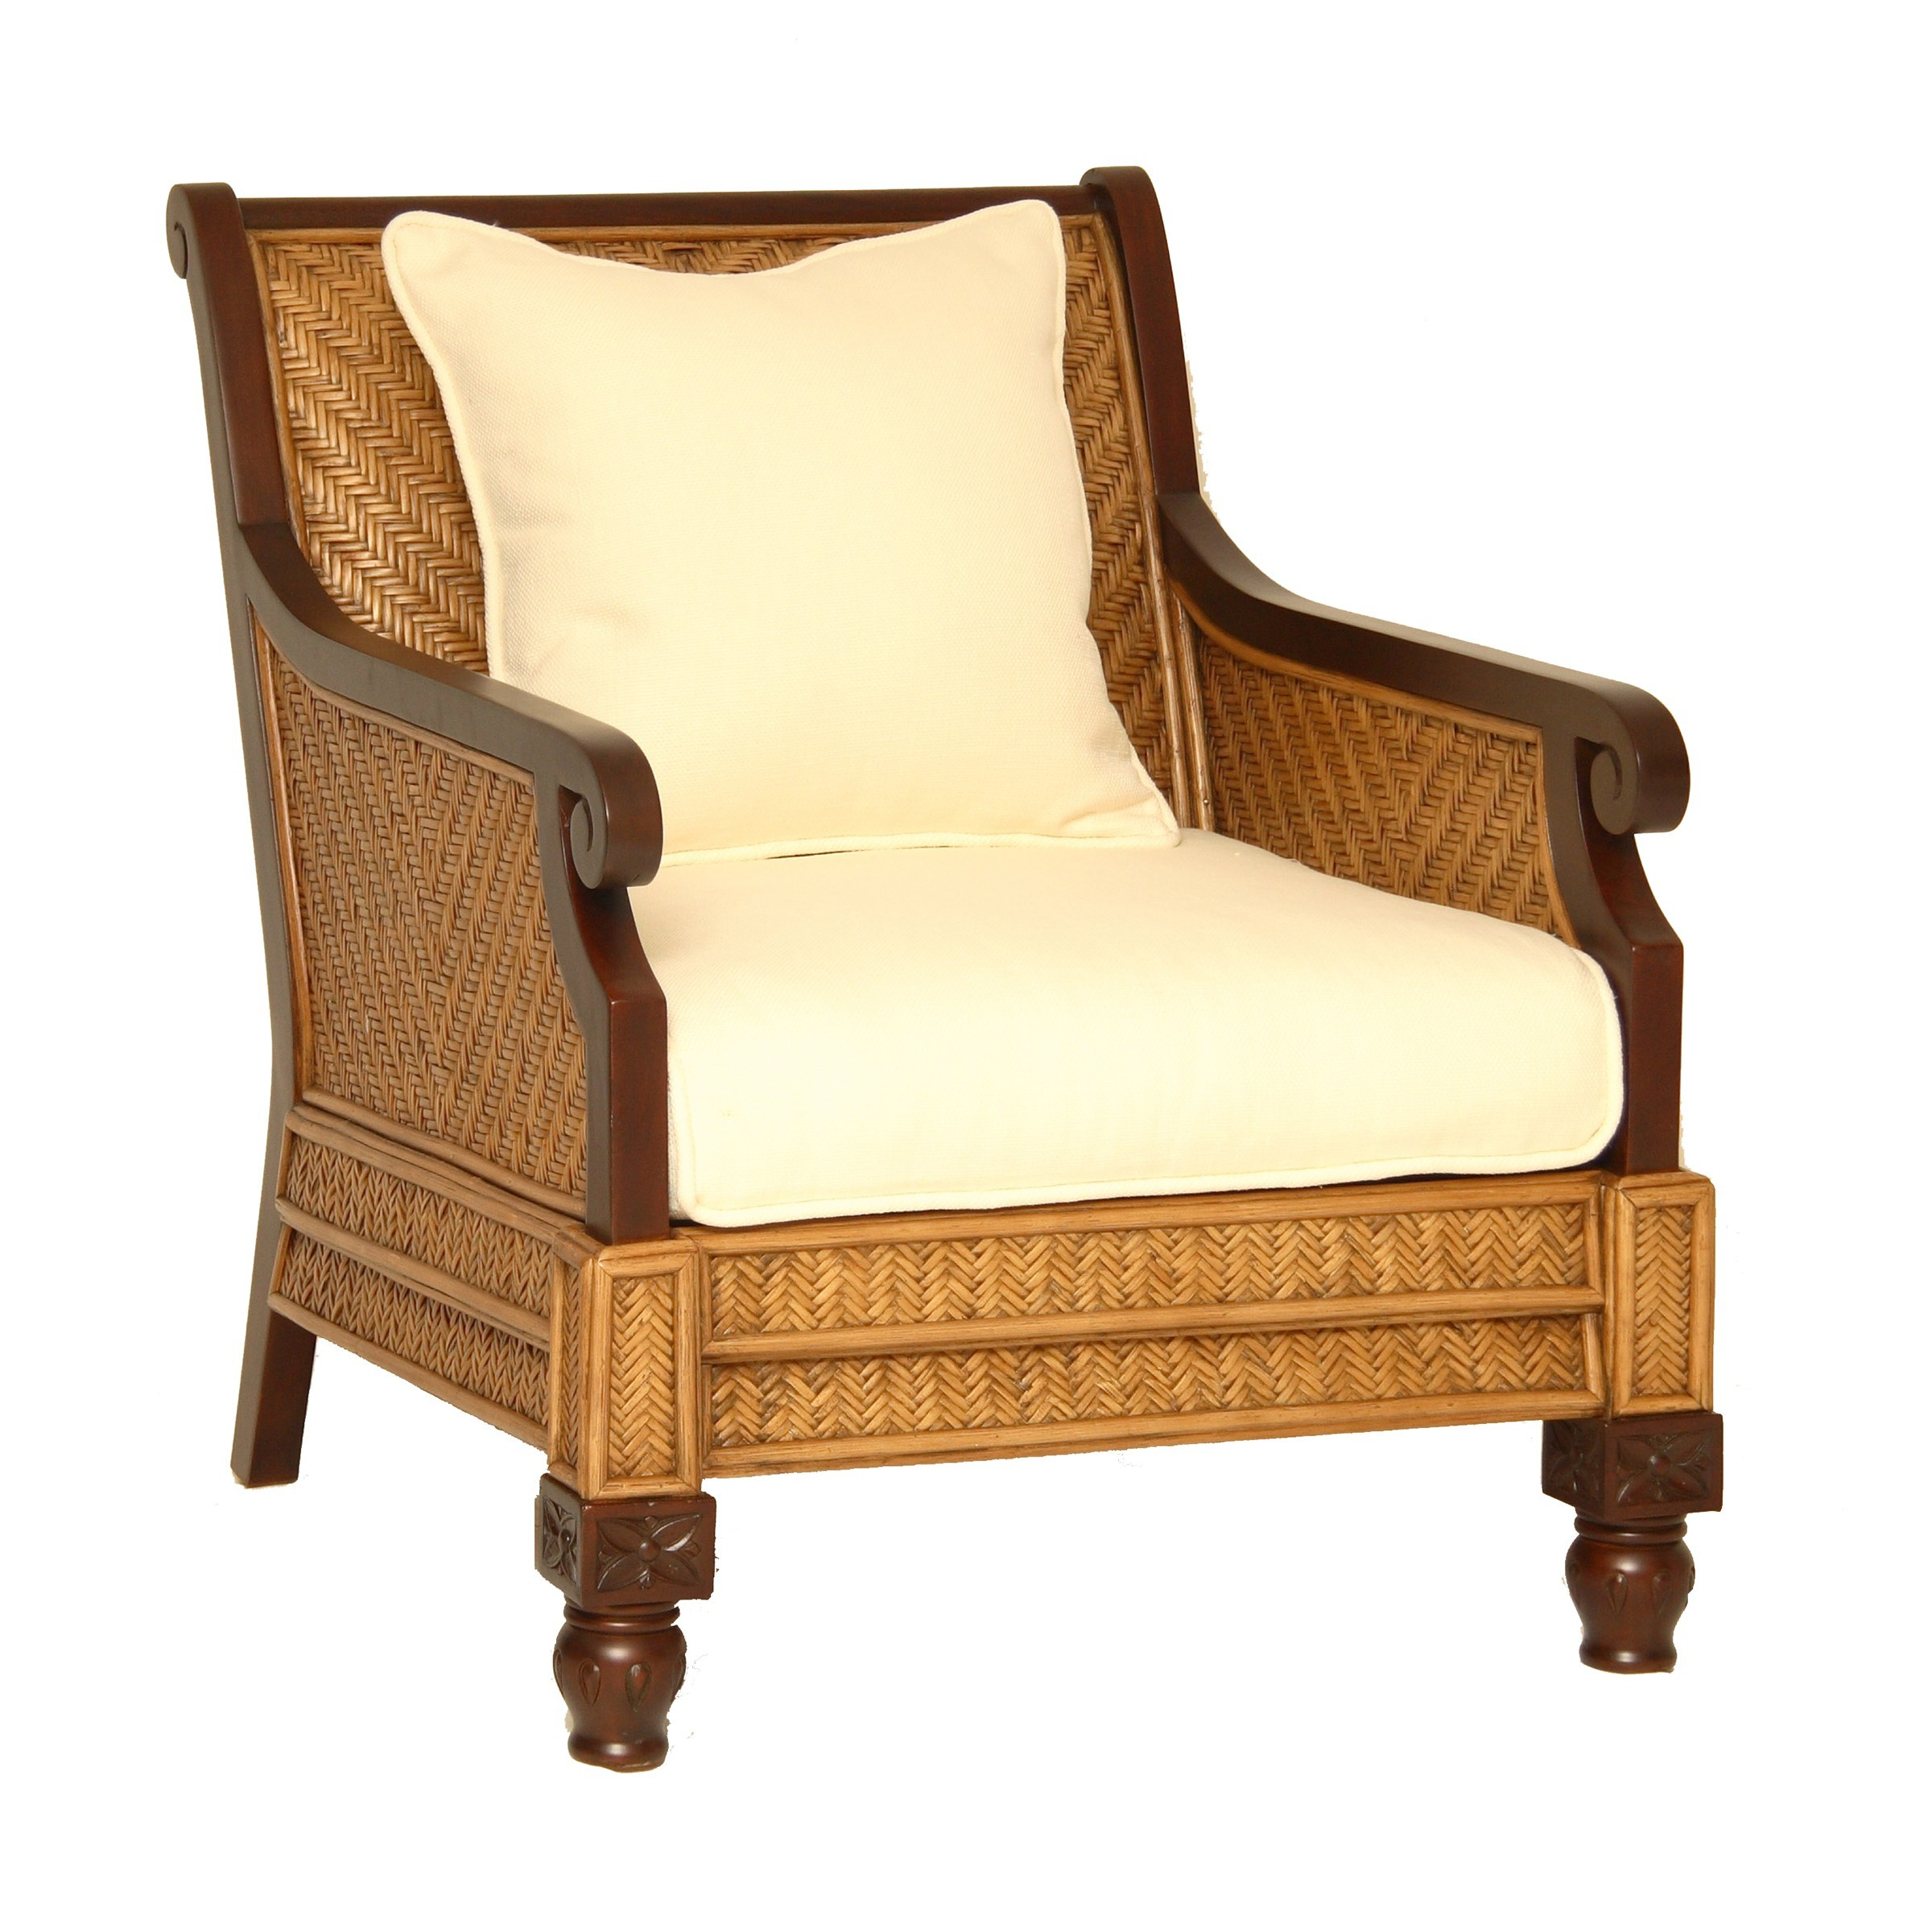 Charmant Plantation Chairs For Sale